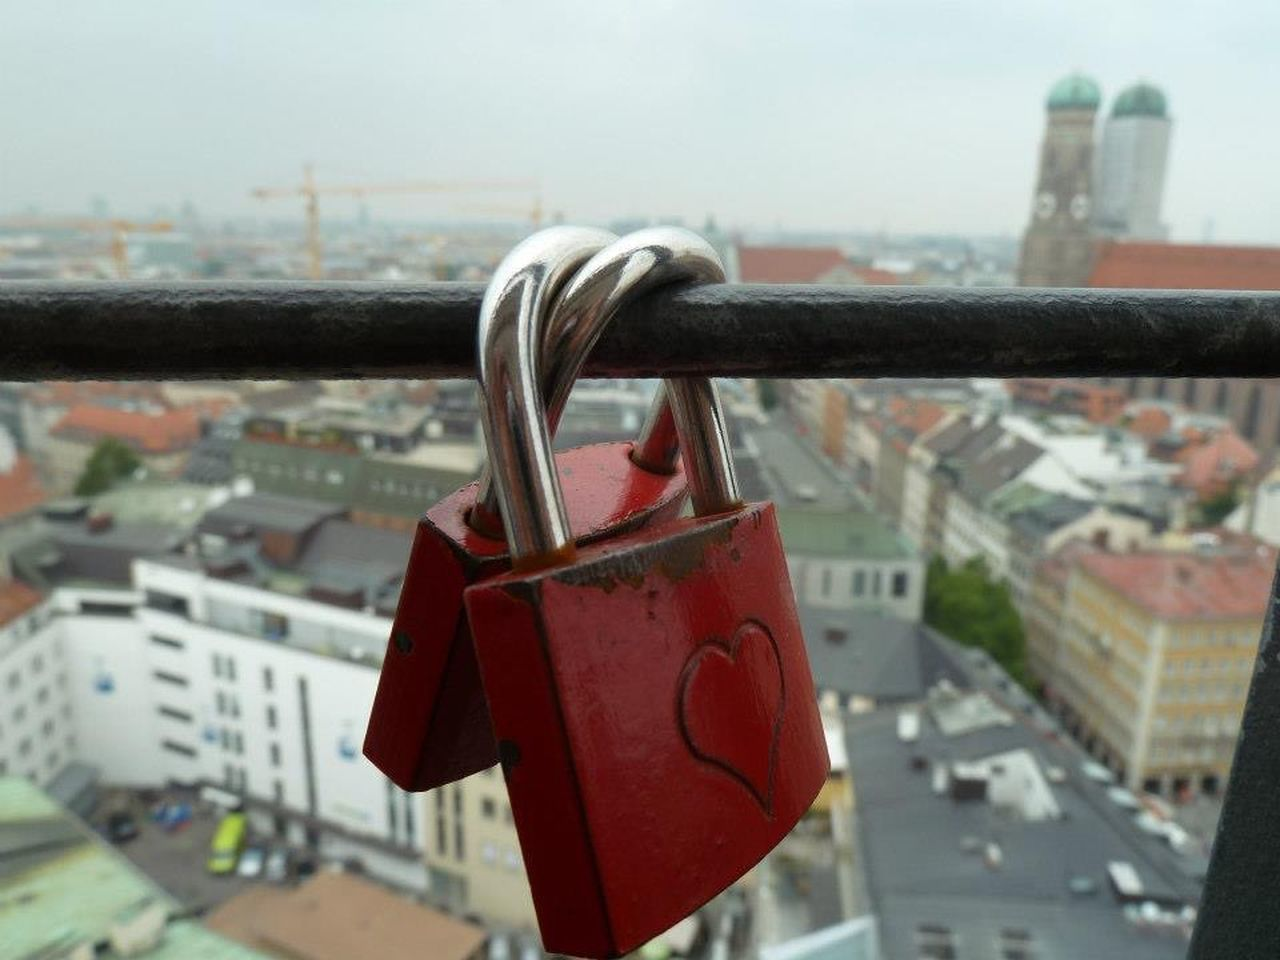 Love Liebe Schloss Munich München Romantic Padlocks Heart Herz Love ♥ Lovely Lovelovelove Church View View From Above Heart ❤ Hearts Forever Foreverlove Lock Sightseeing Walking Around Views Adapted To The City